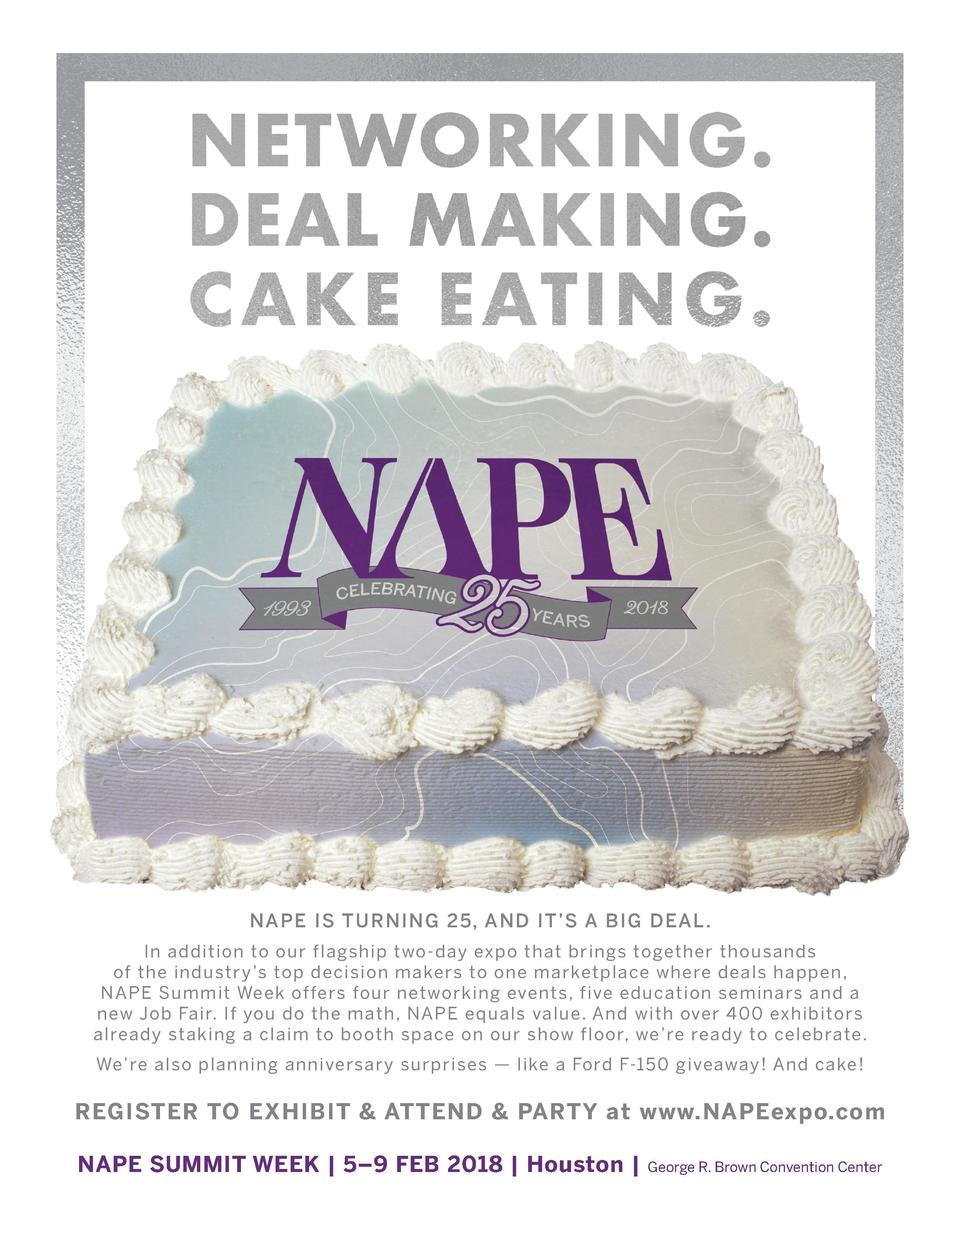 NAPE IS TURNING 25, AND IT   S A BIG DEAL. In addition to our flagship two-day expo that brings together thousands of the ...